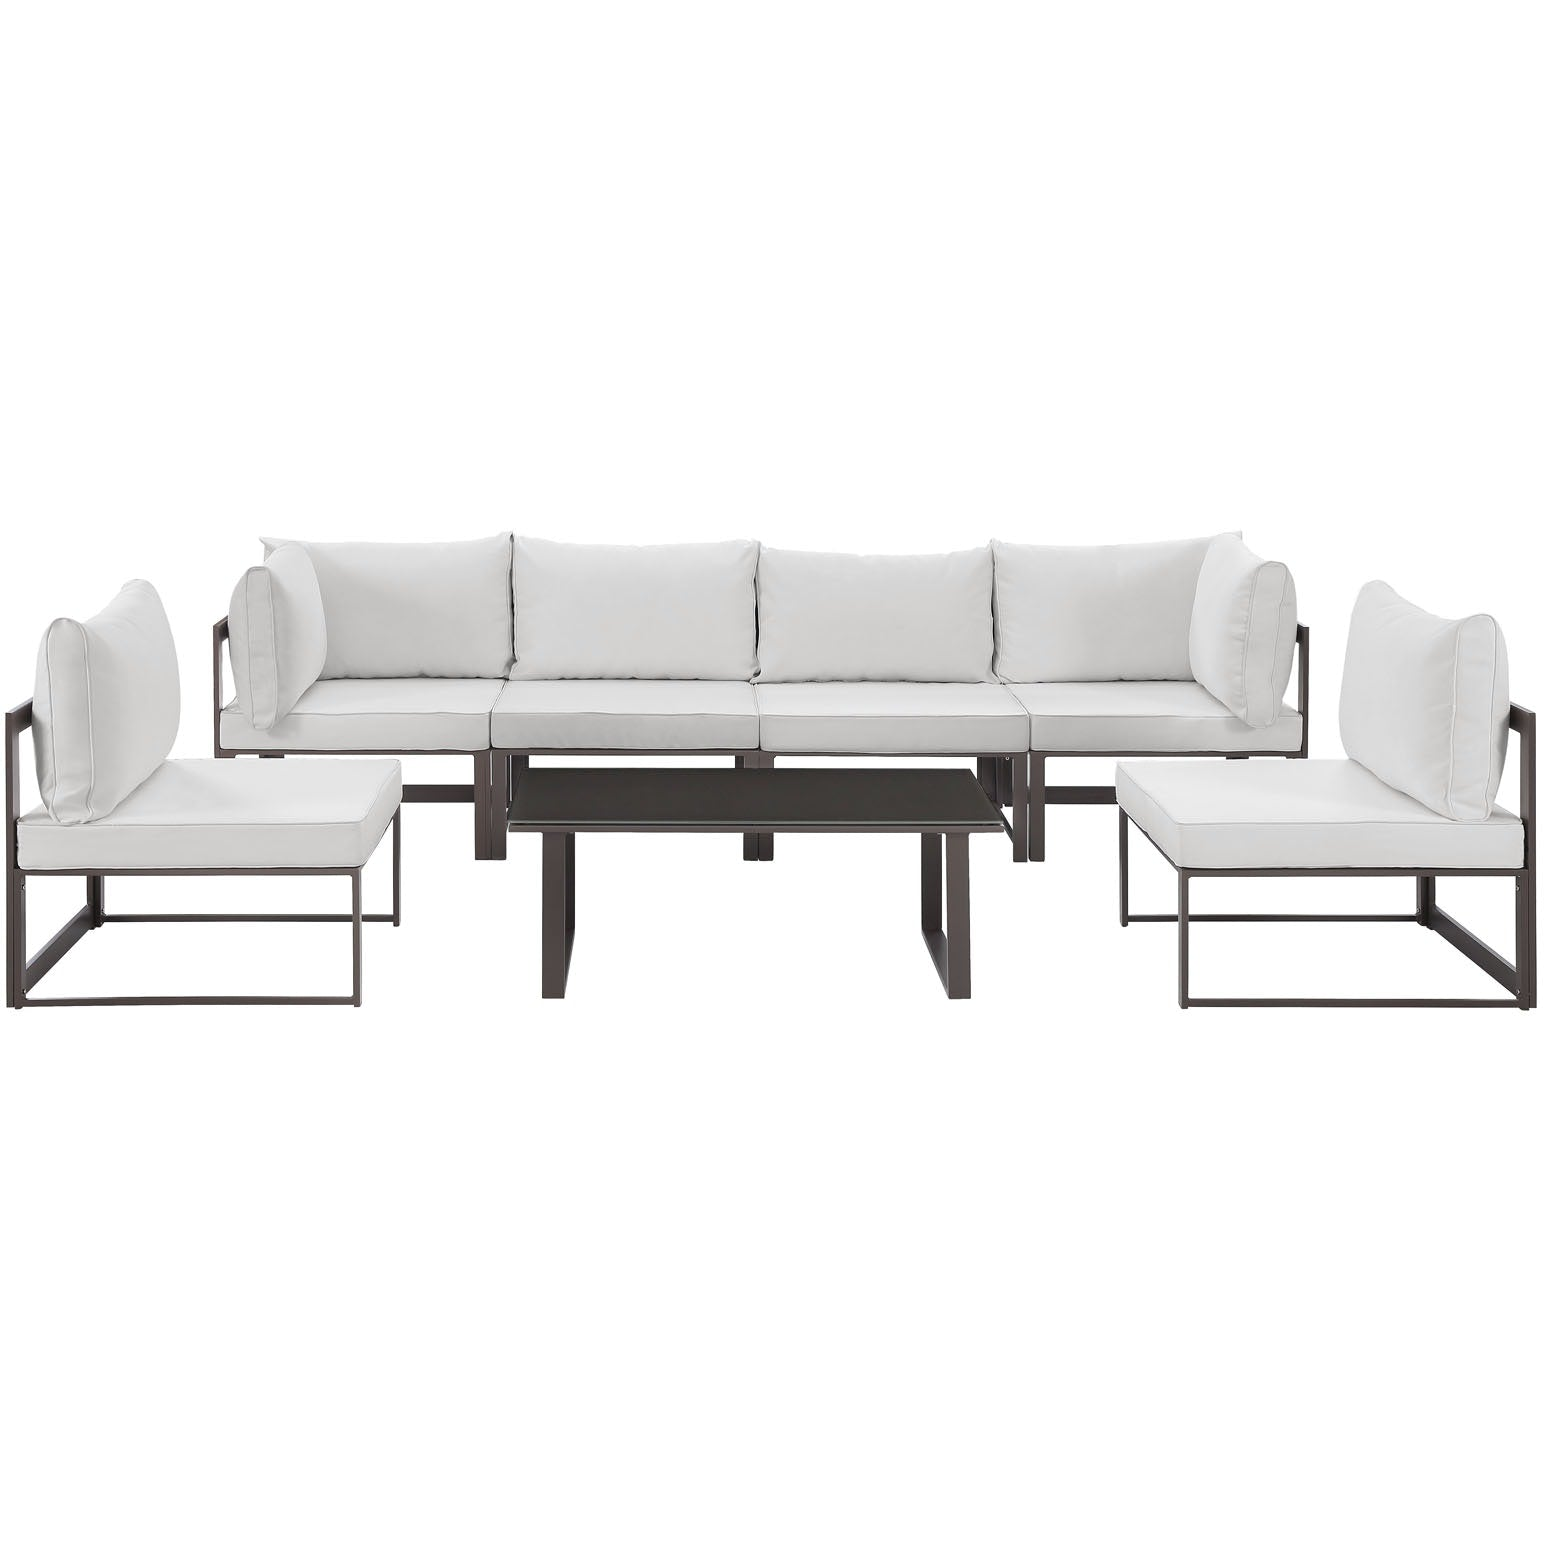 Fortuna 7 Piece Outdoor Patio Sectional Sofa Set - Brown White